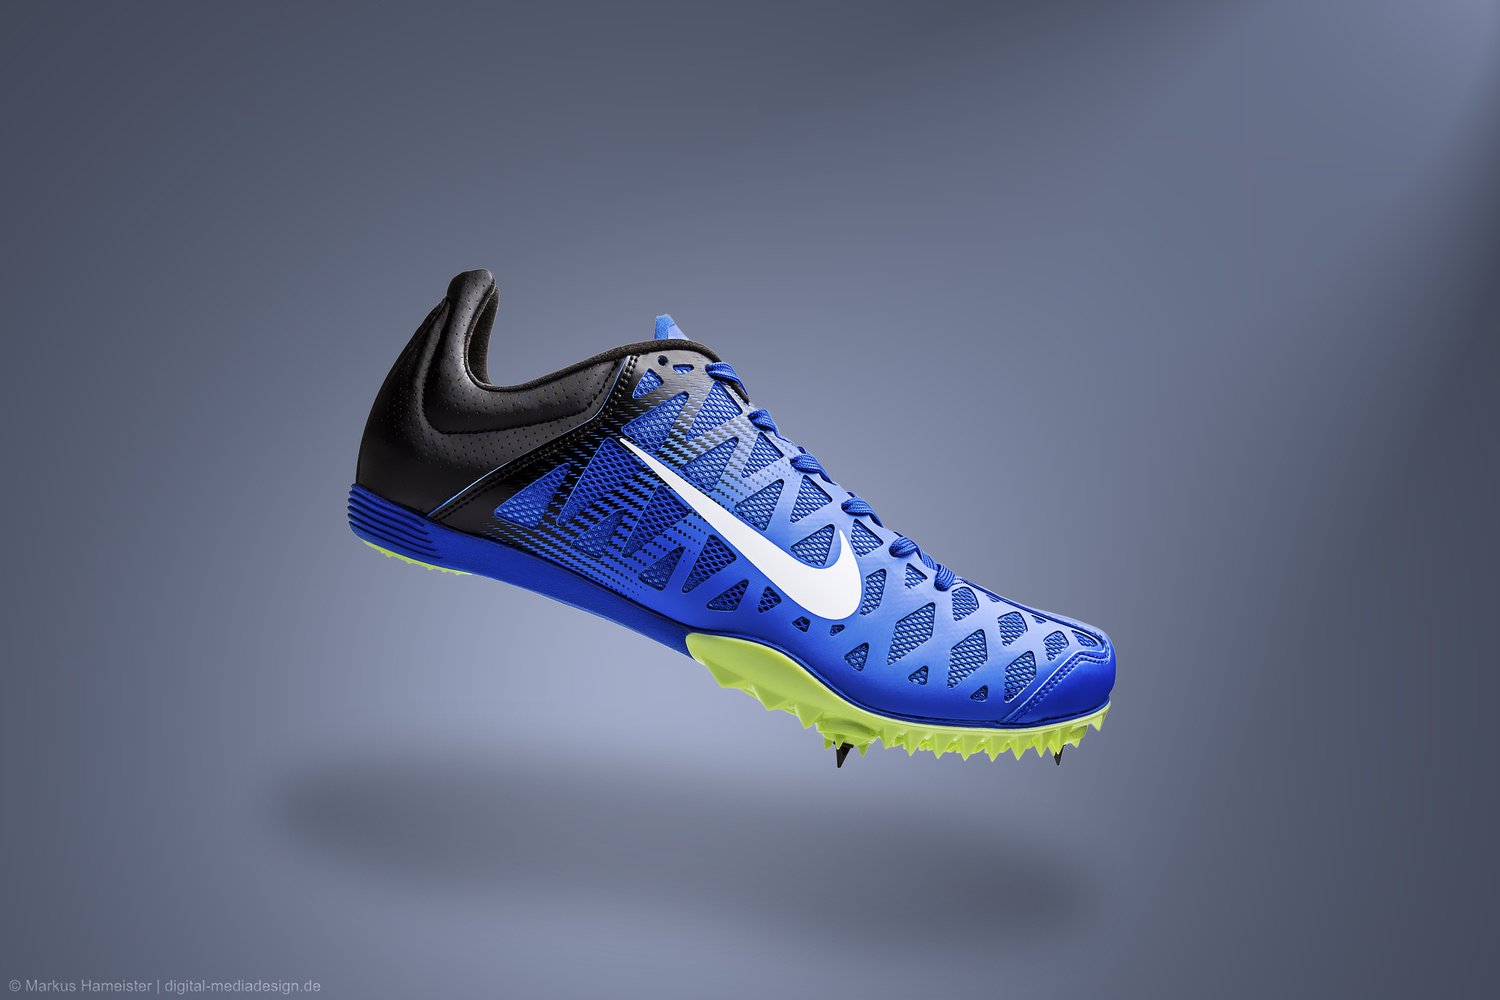 Nike Zoom Maxcat  by Markus Hameister